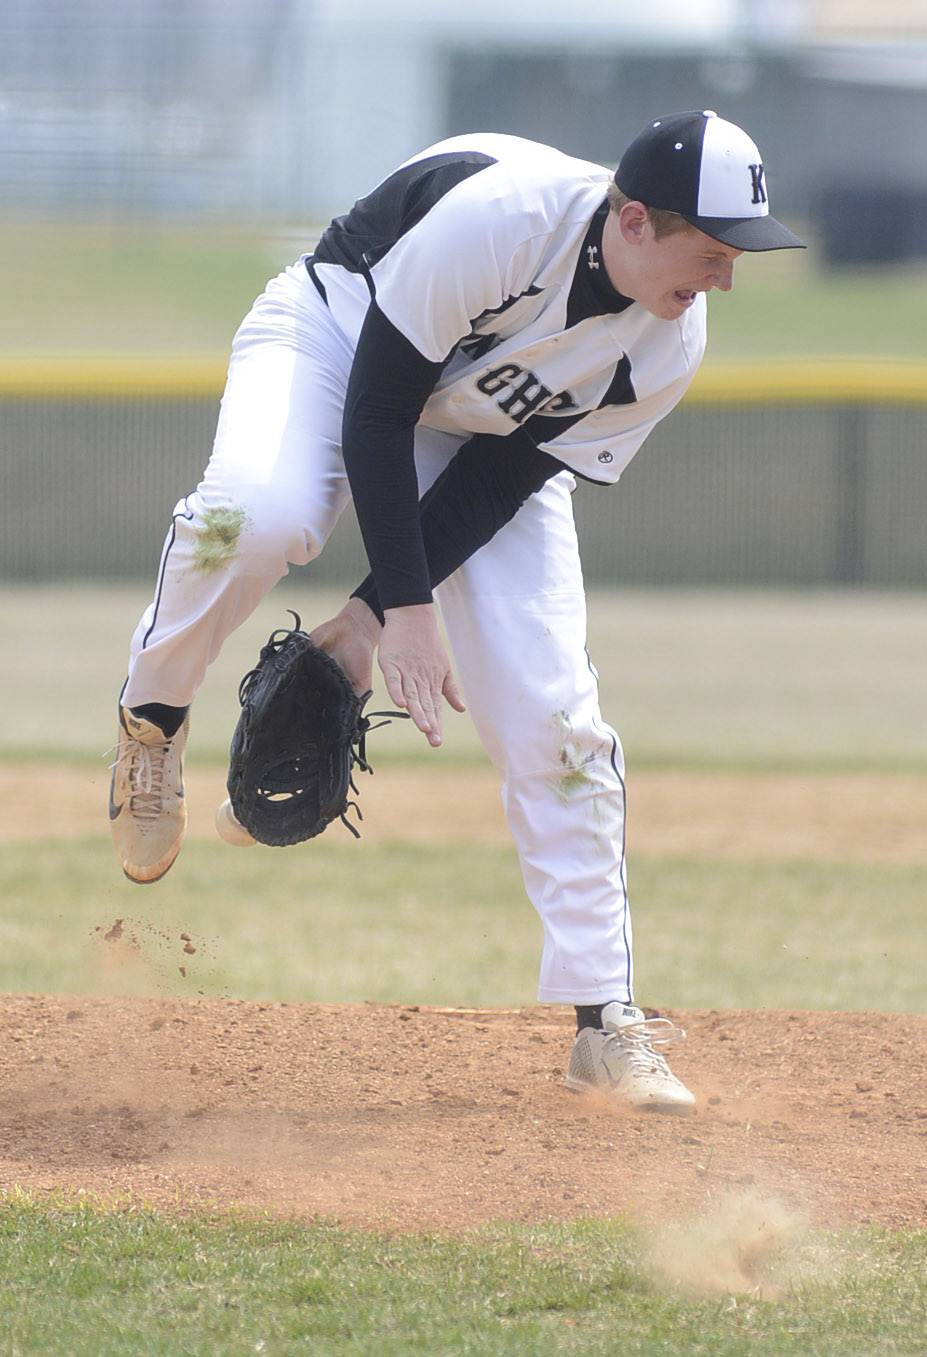 Kaneland's Nick Stahl tries to catch a hit off the bat as it flies between his legs and past his glove in the eighth inning on Saturday, April 19.